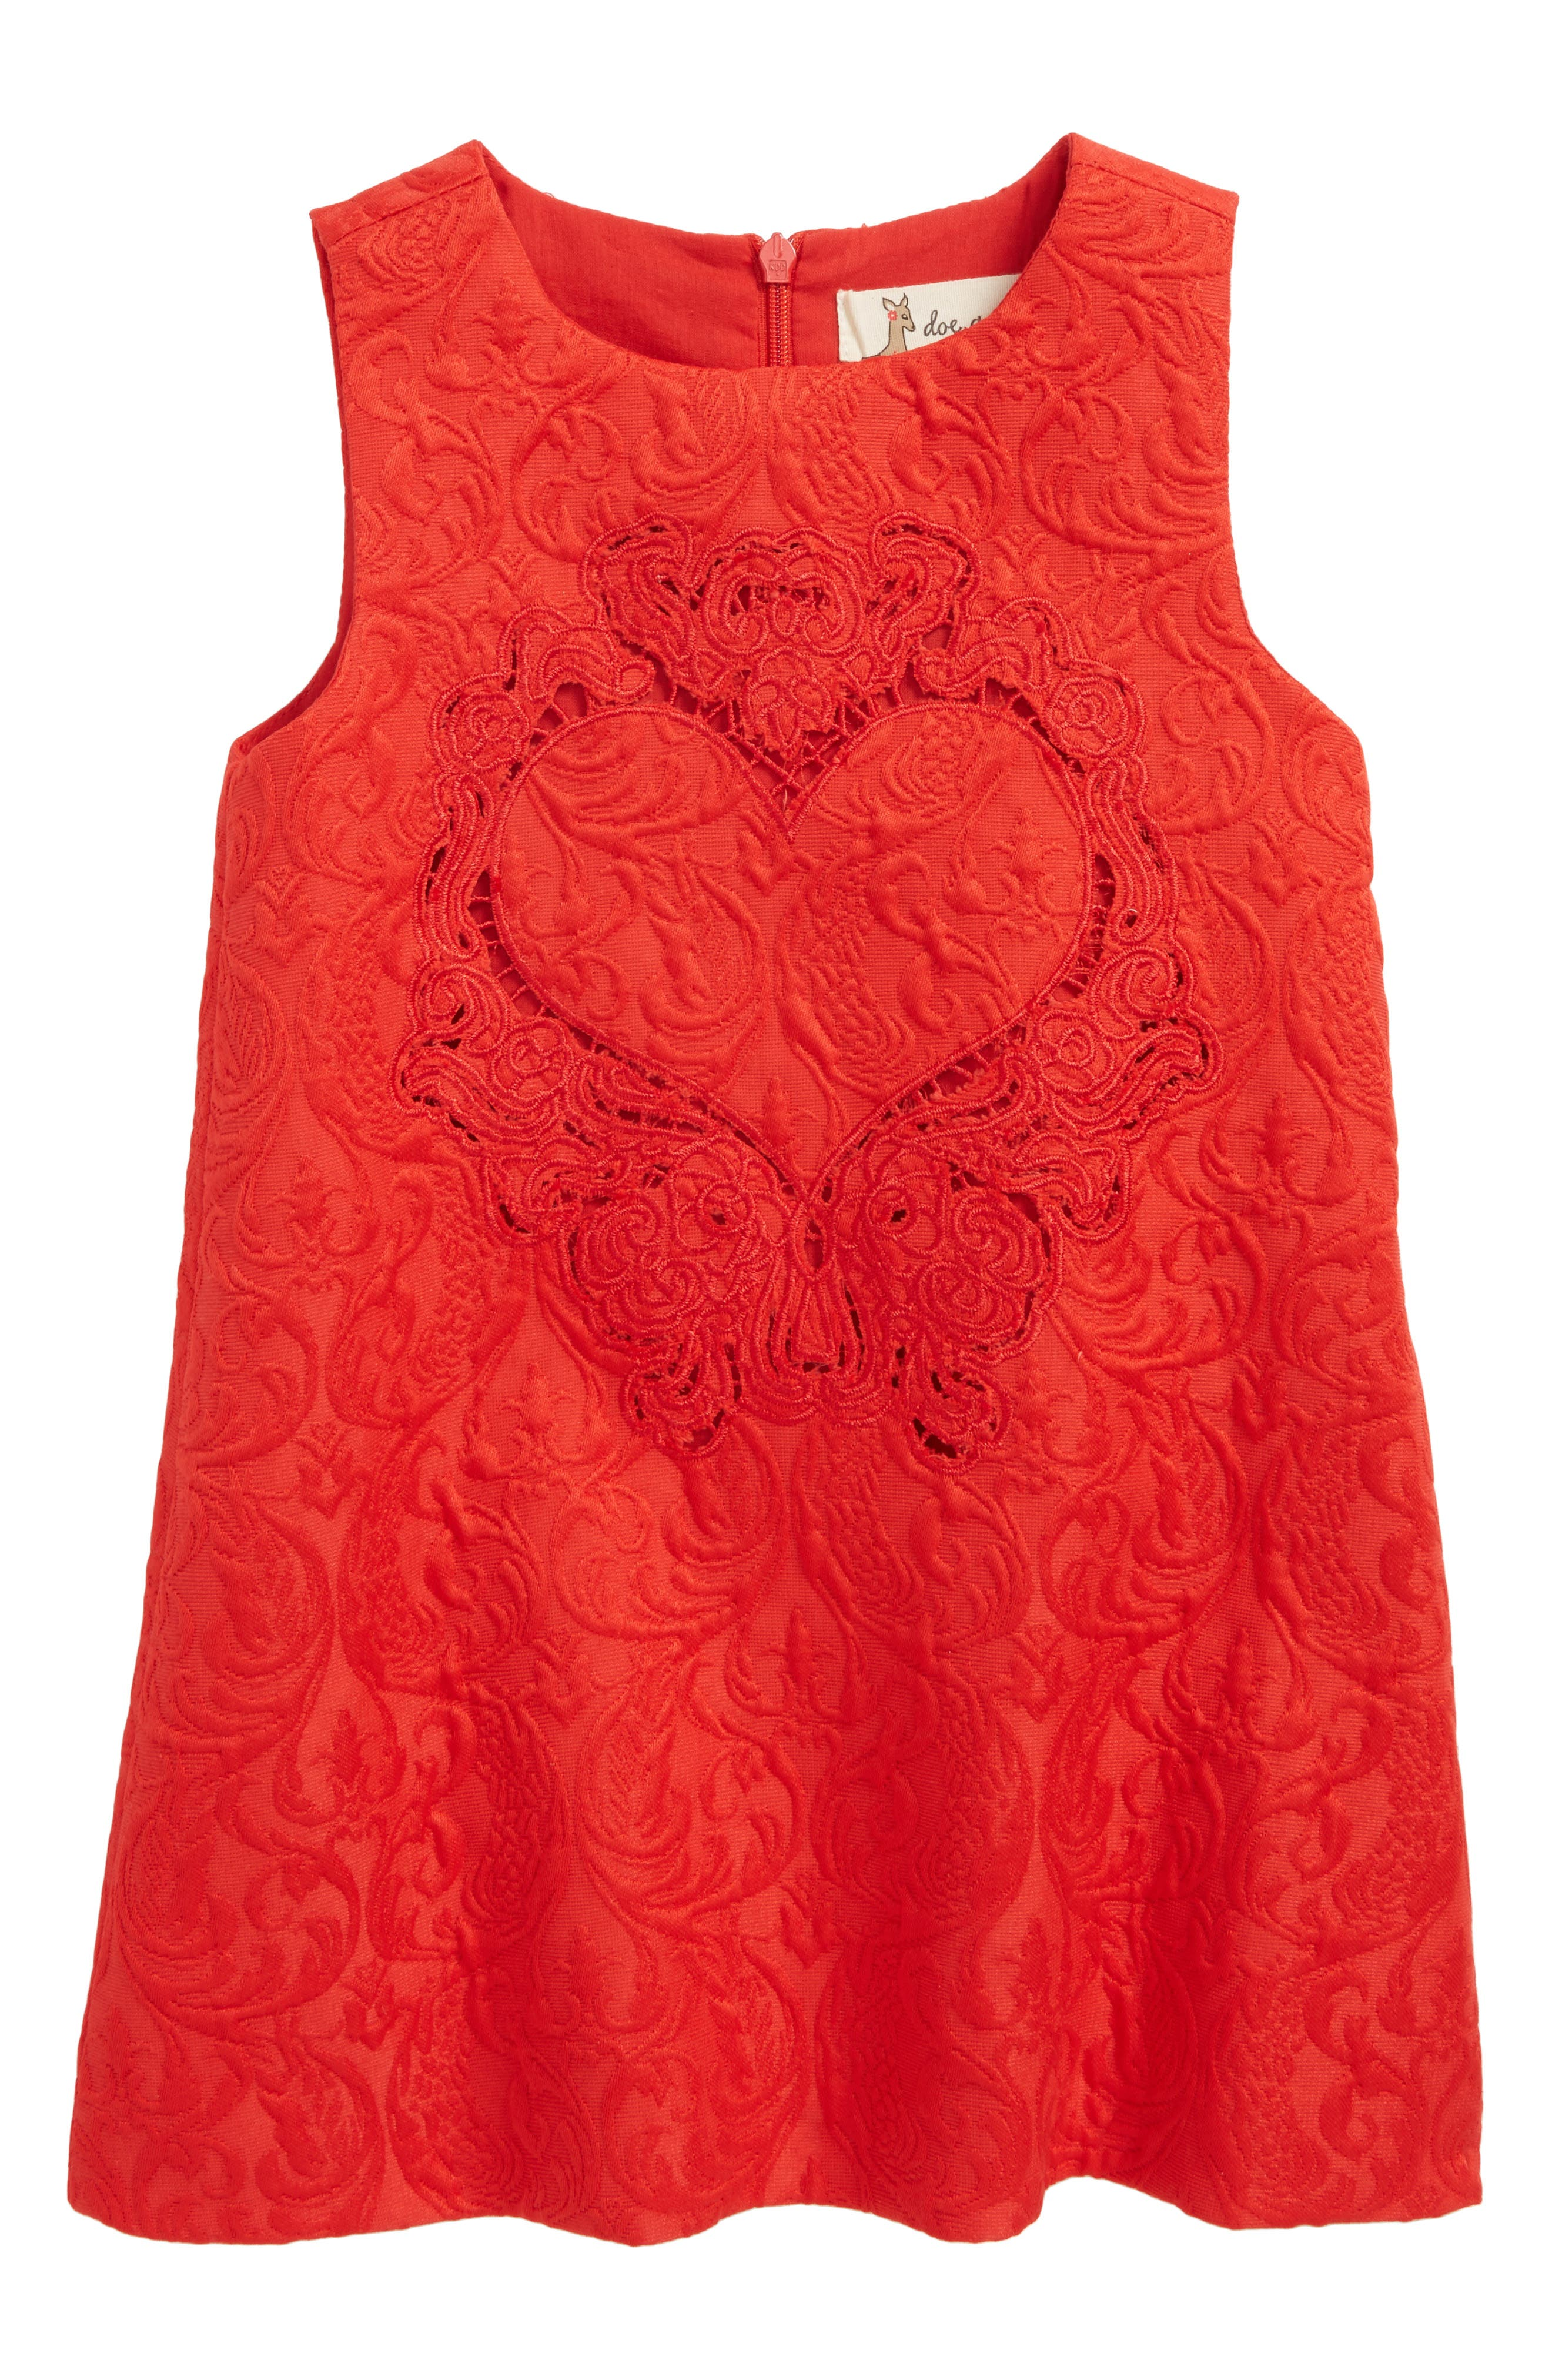 Heart Jacquard Dress,                         Main,                         color, Red